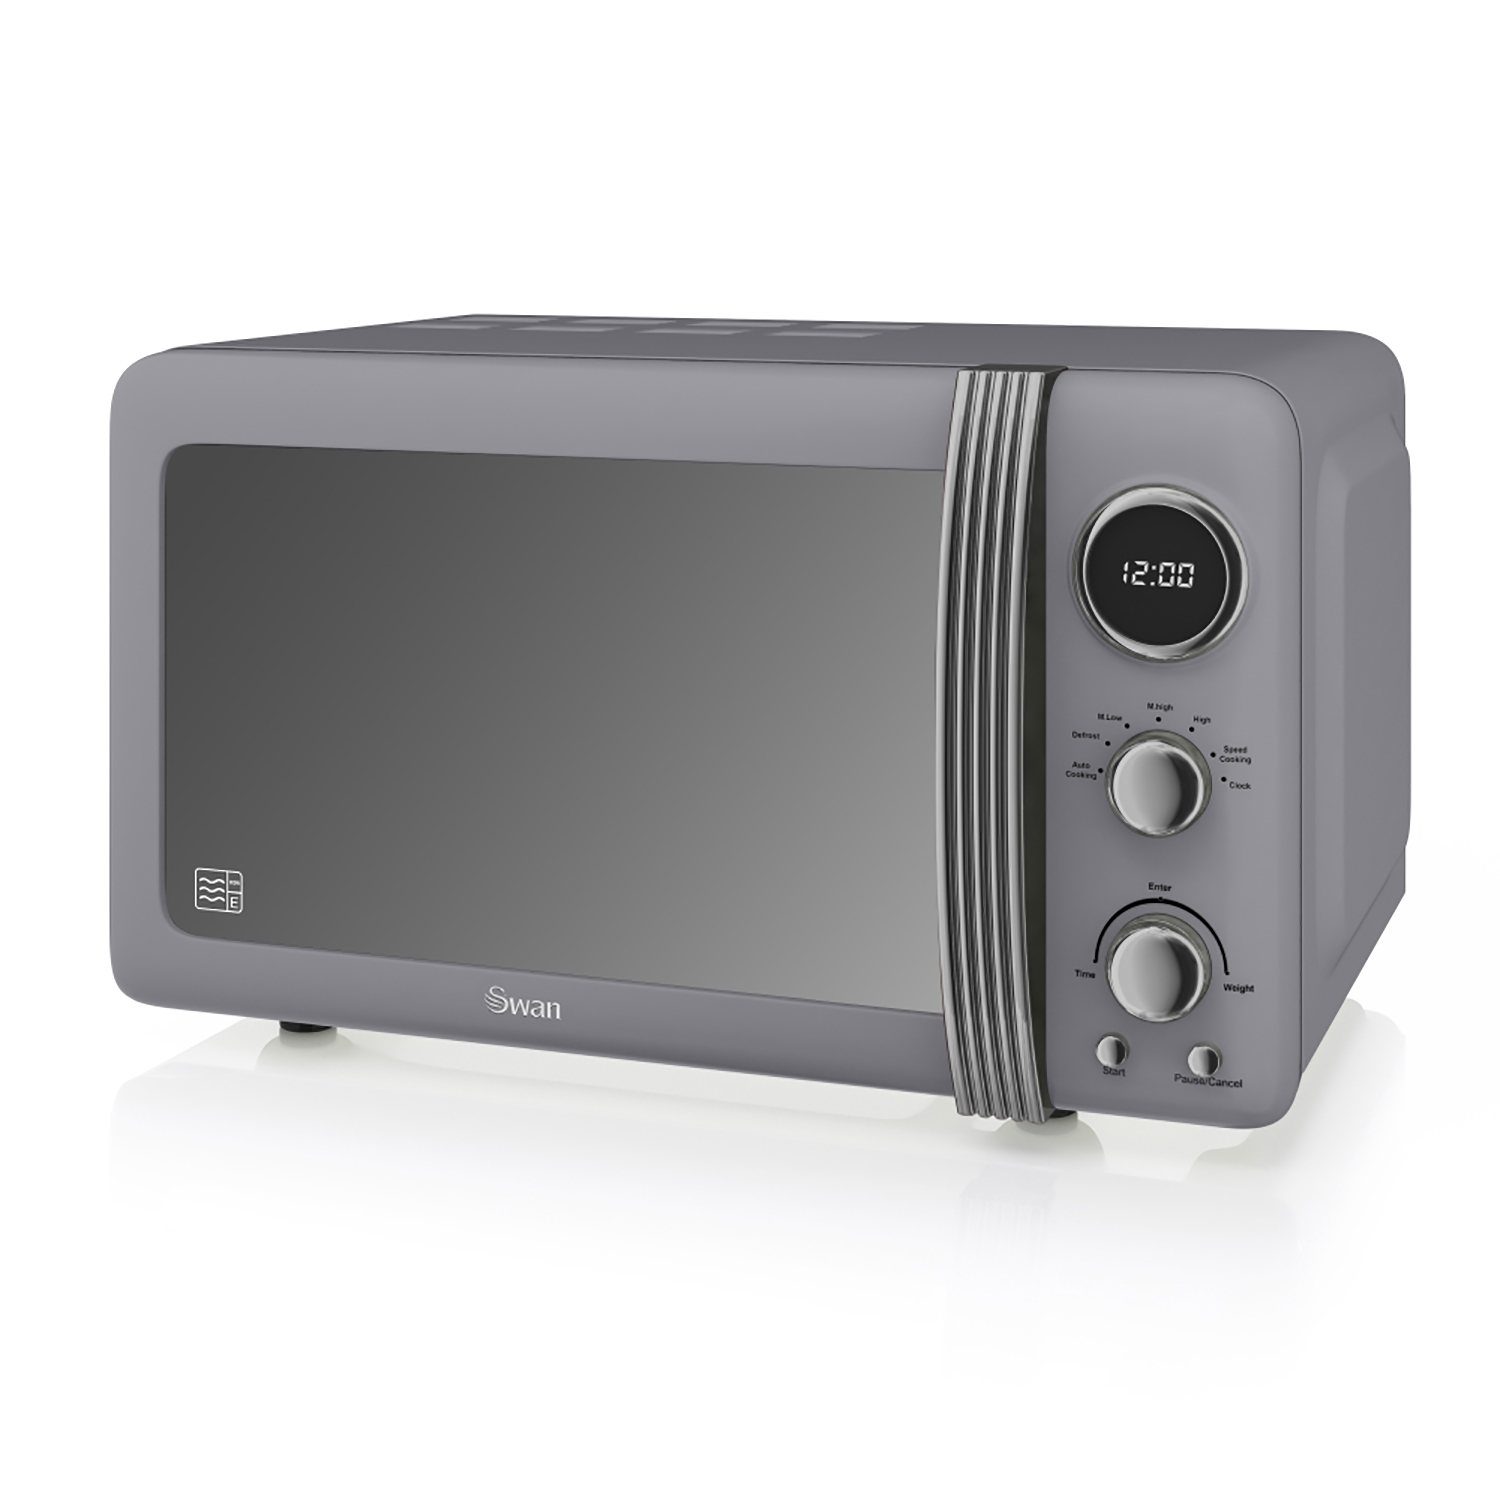 Image of Swan Retro Digital Microwave 20 Litre, Grey